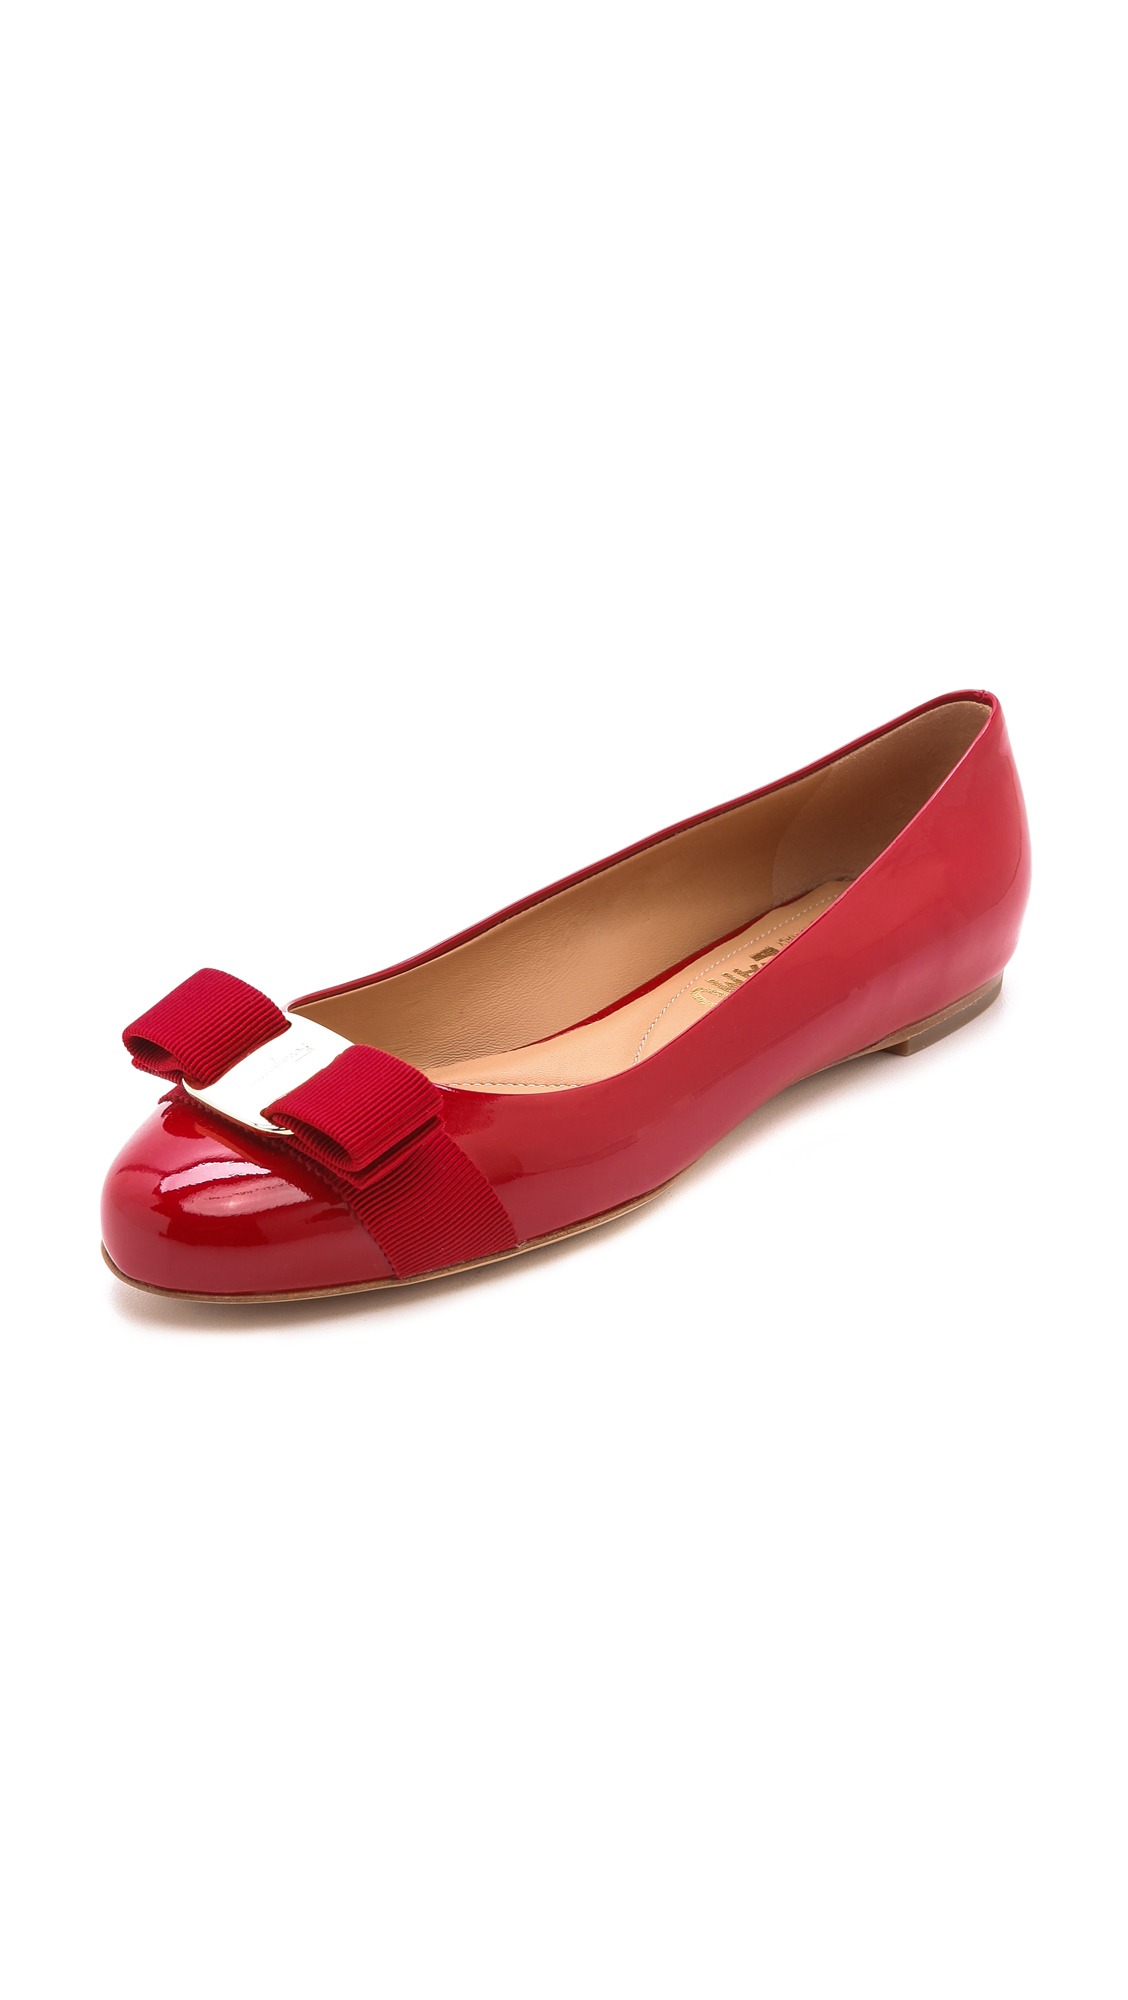 Varina Mini Patent Leather Ballet Flat, Toddler/Youth Sizes 10T-2Y, Rosso